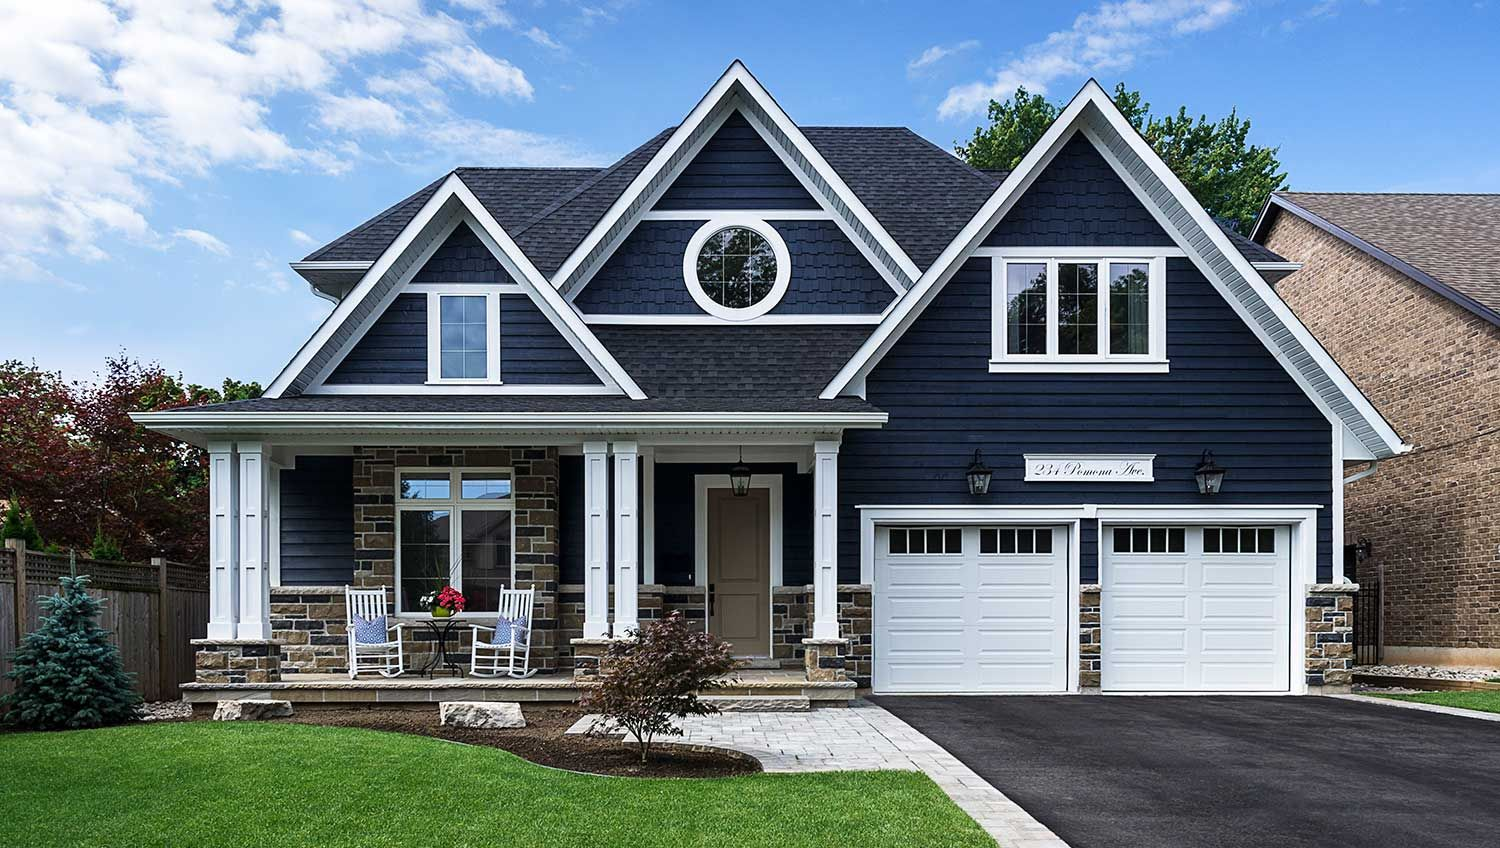 Navy house with white trim floor plans elevations in - White house with blue trim ...